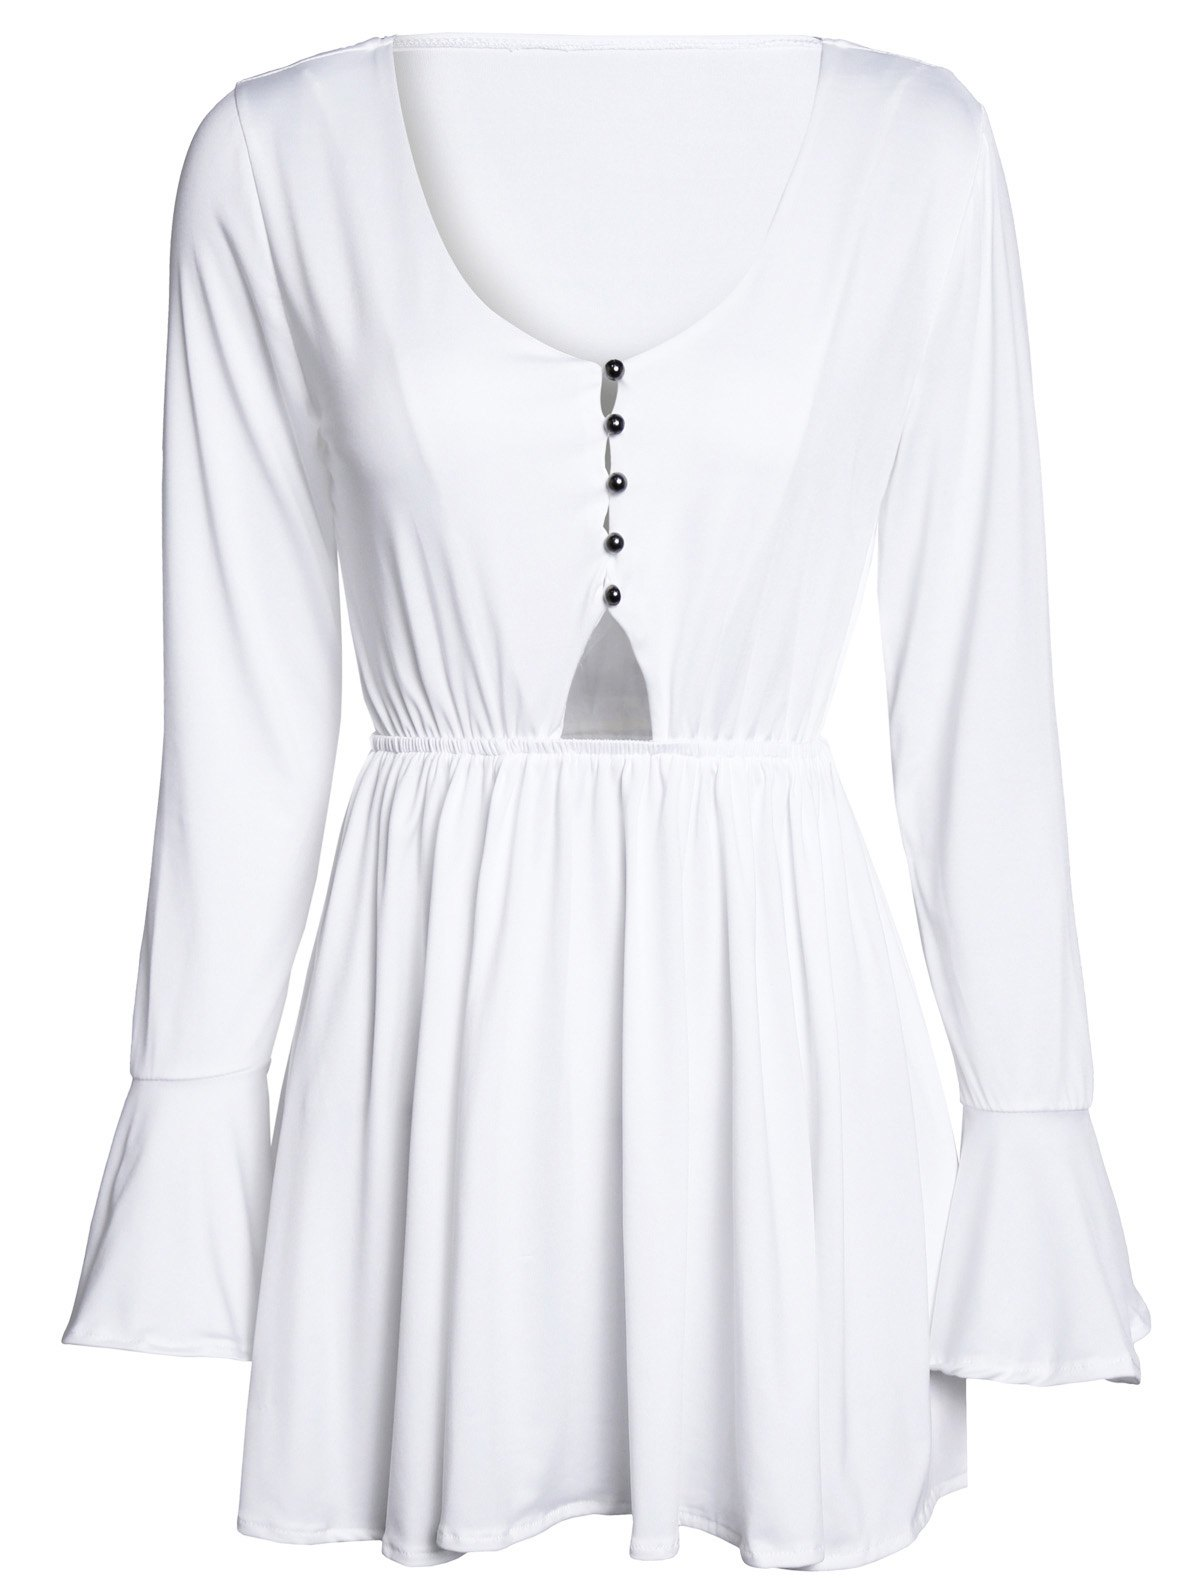 Stylish Flare Sleeve V Neck White Hollow Out Mini Dress For Women - WHITE M